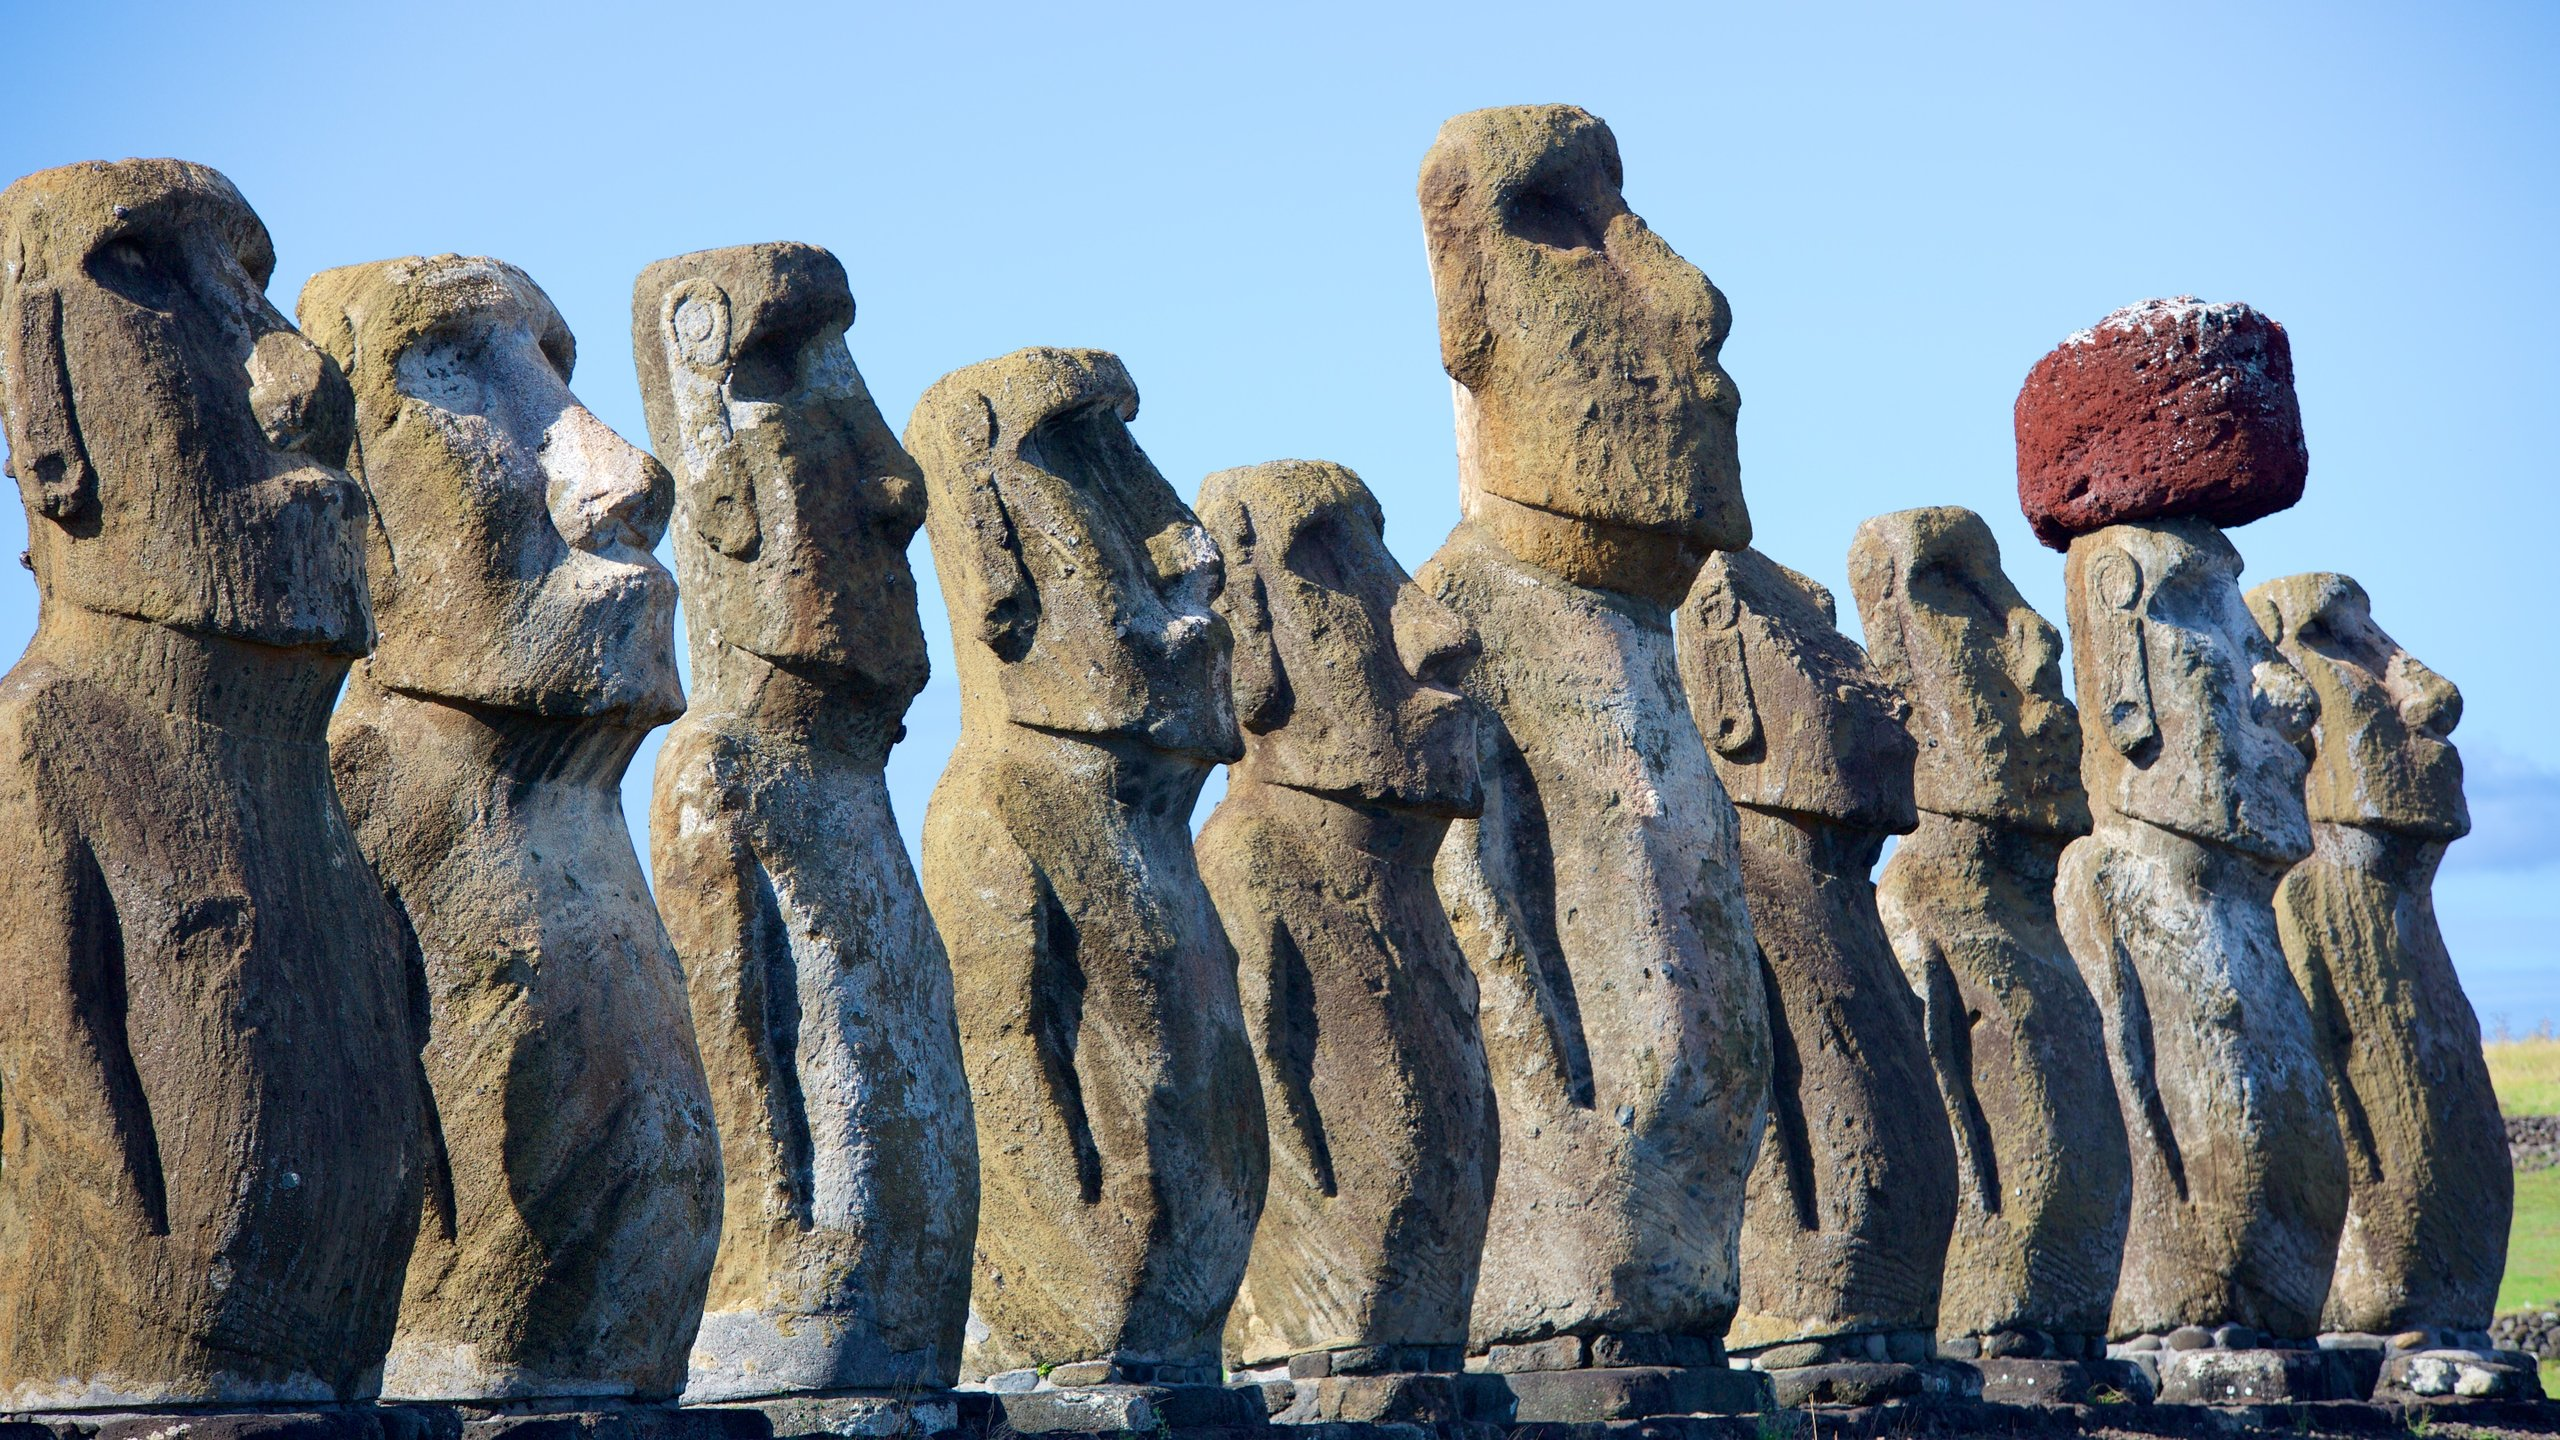 The largest of its type on Easter Island, this impressive ceremonial platform features 15 huge head-and-torso stone statues lined up in a row.